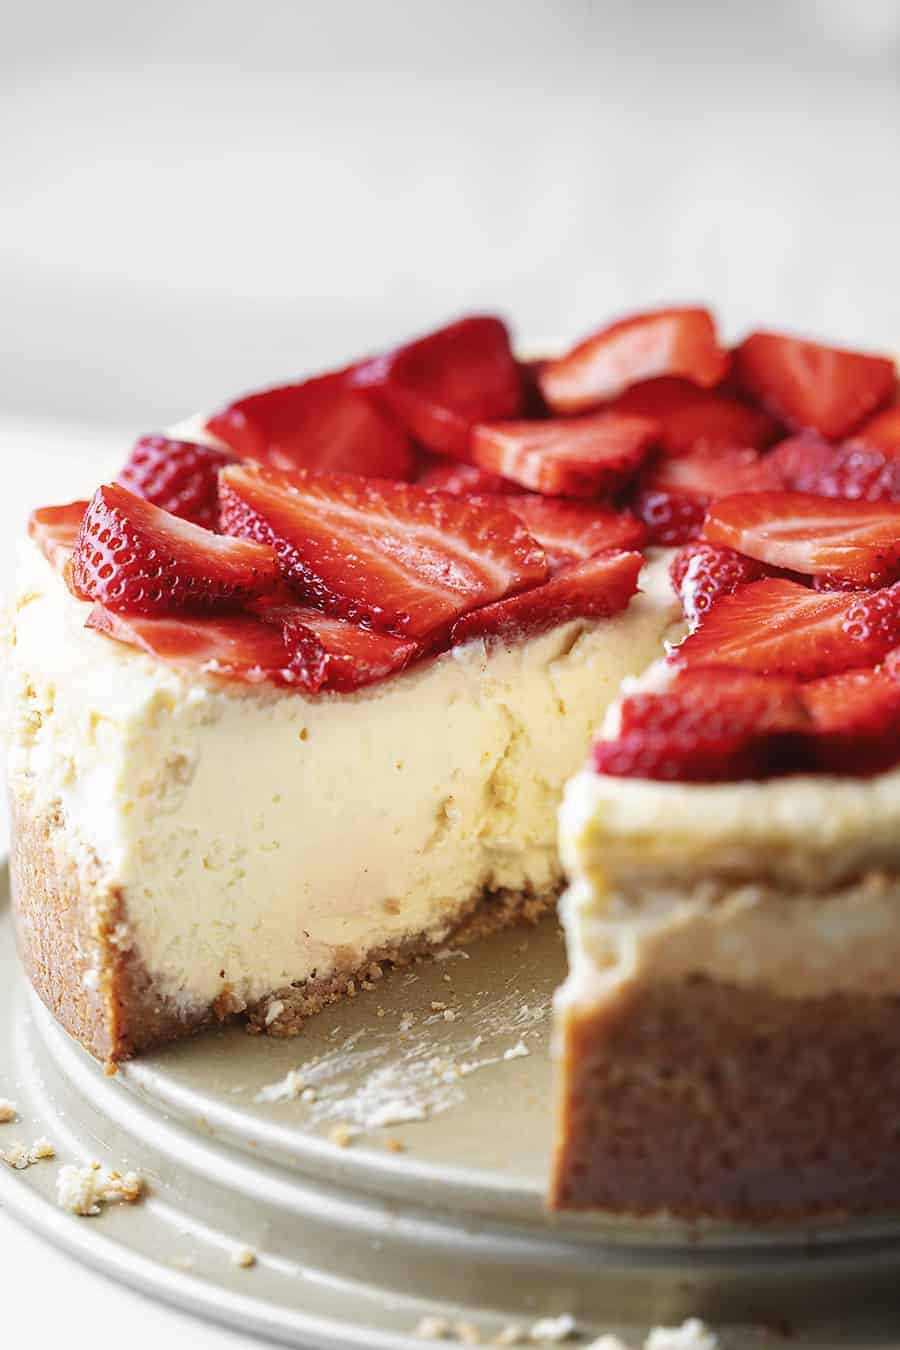 Easy Keto Cheesecake  The Best Keto Cheesecake • Low Carb with Jennifer